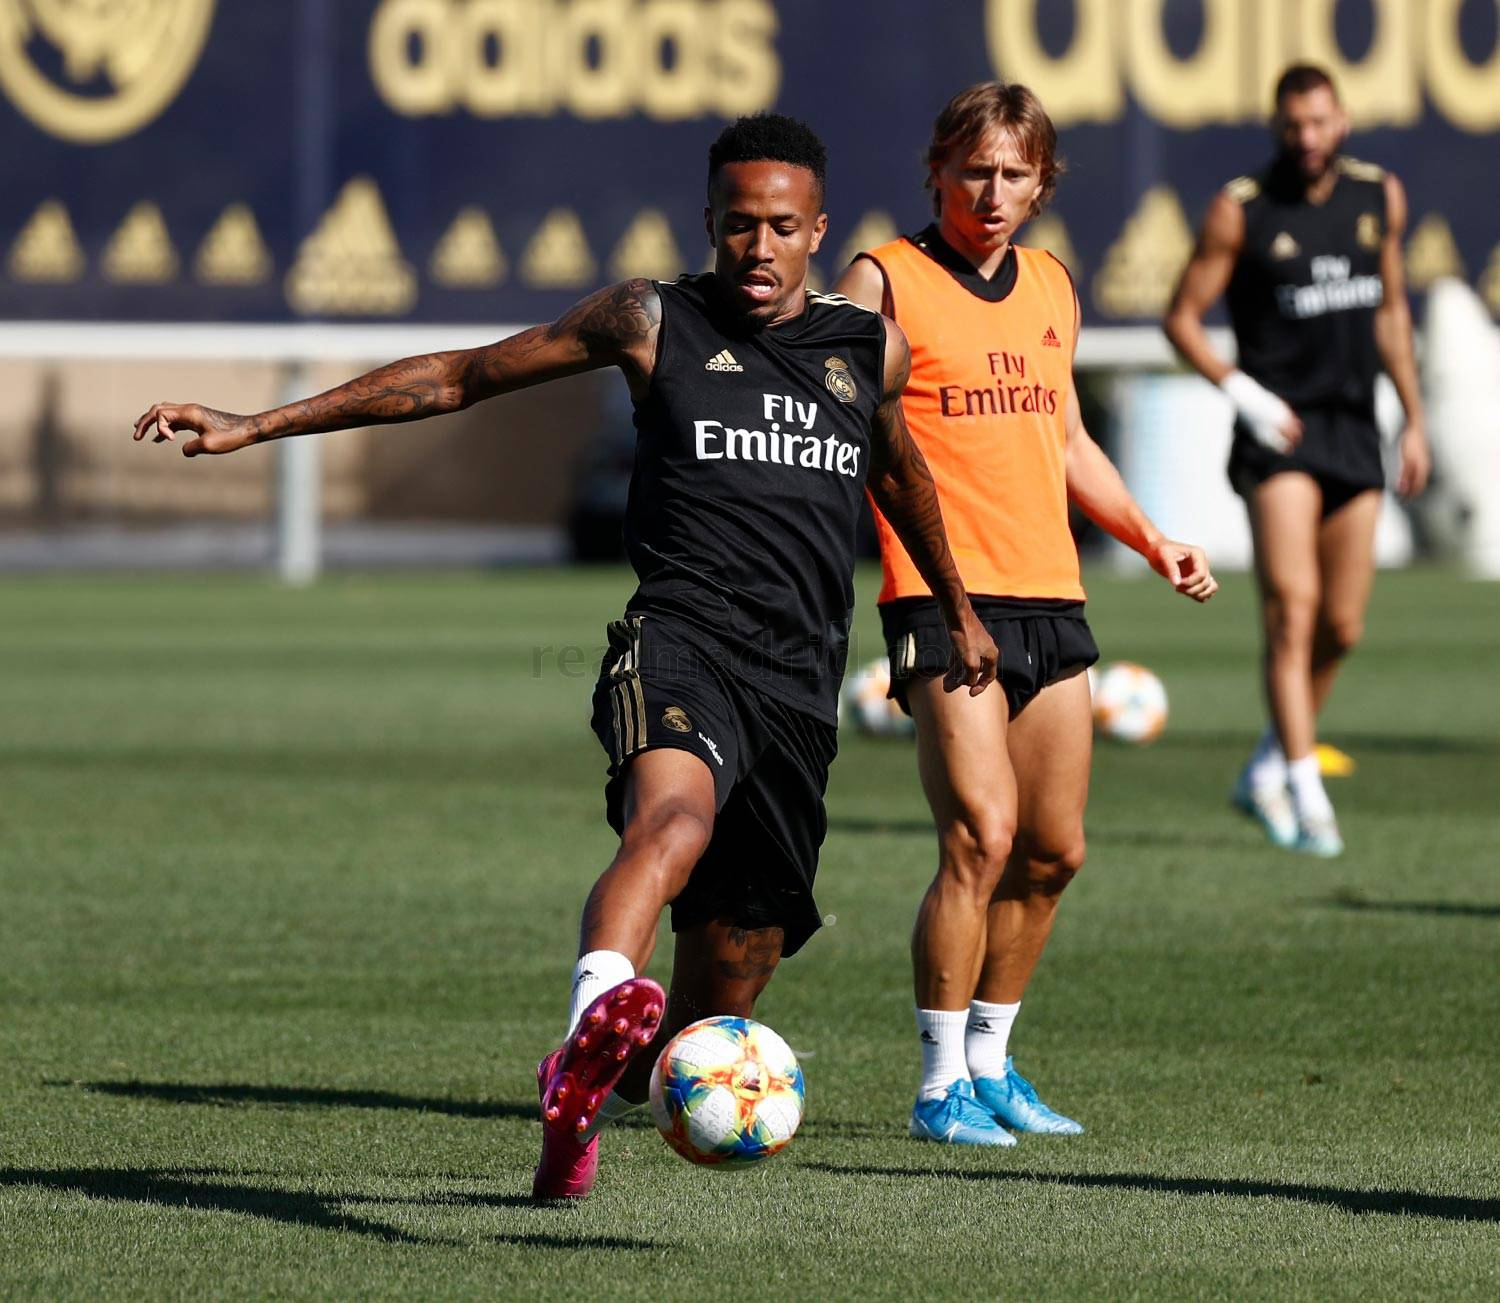 Real Madrid - Entrenamiento del Real Madrid  - 10-08-2019